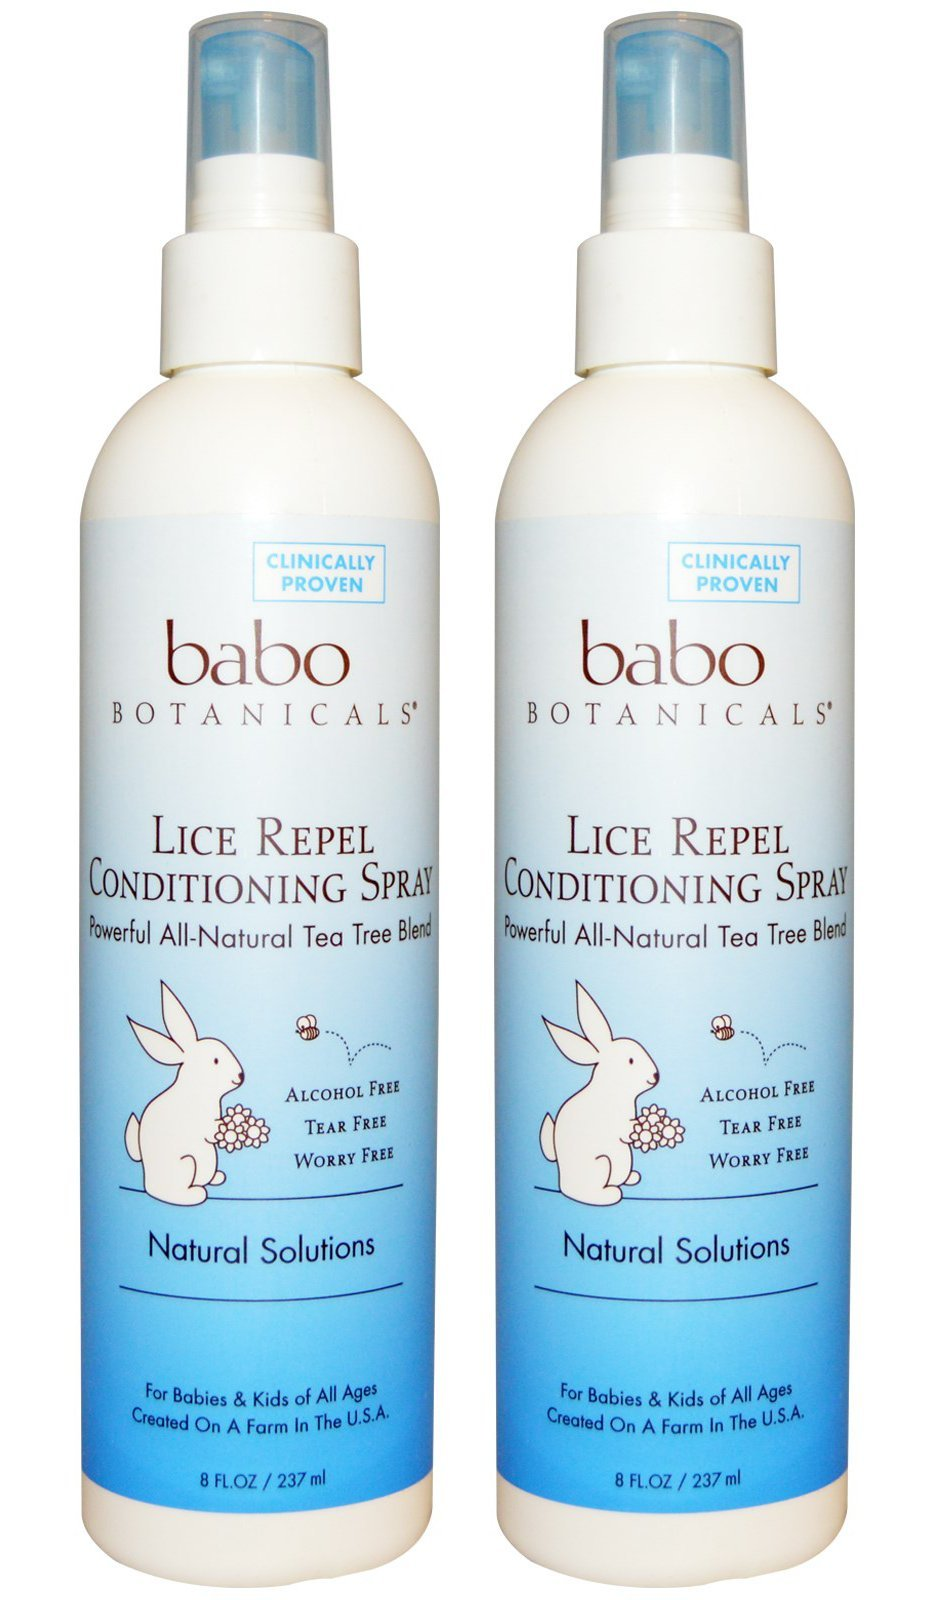 Babo Botanicals Lice Repel Conditioning Spray, Powerful All-Natural Tea Tree Blend, With Calendula, Meadowsweet and Chamomile, 8 fl. oz. (Pack of 2) by Babo Botanicals